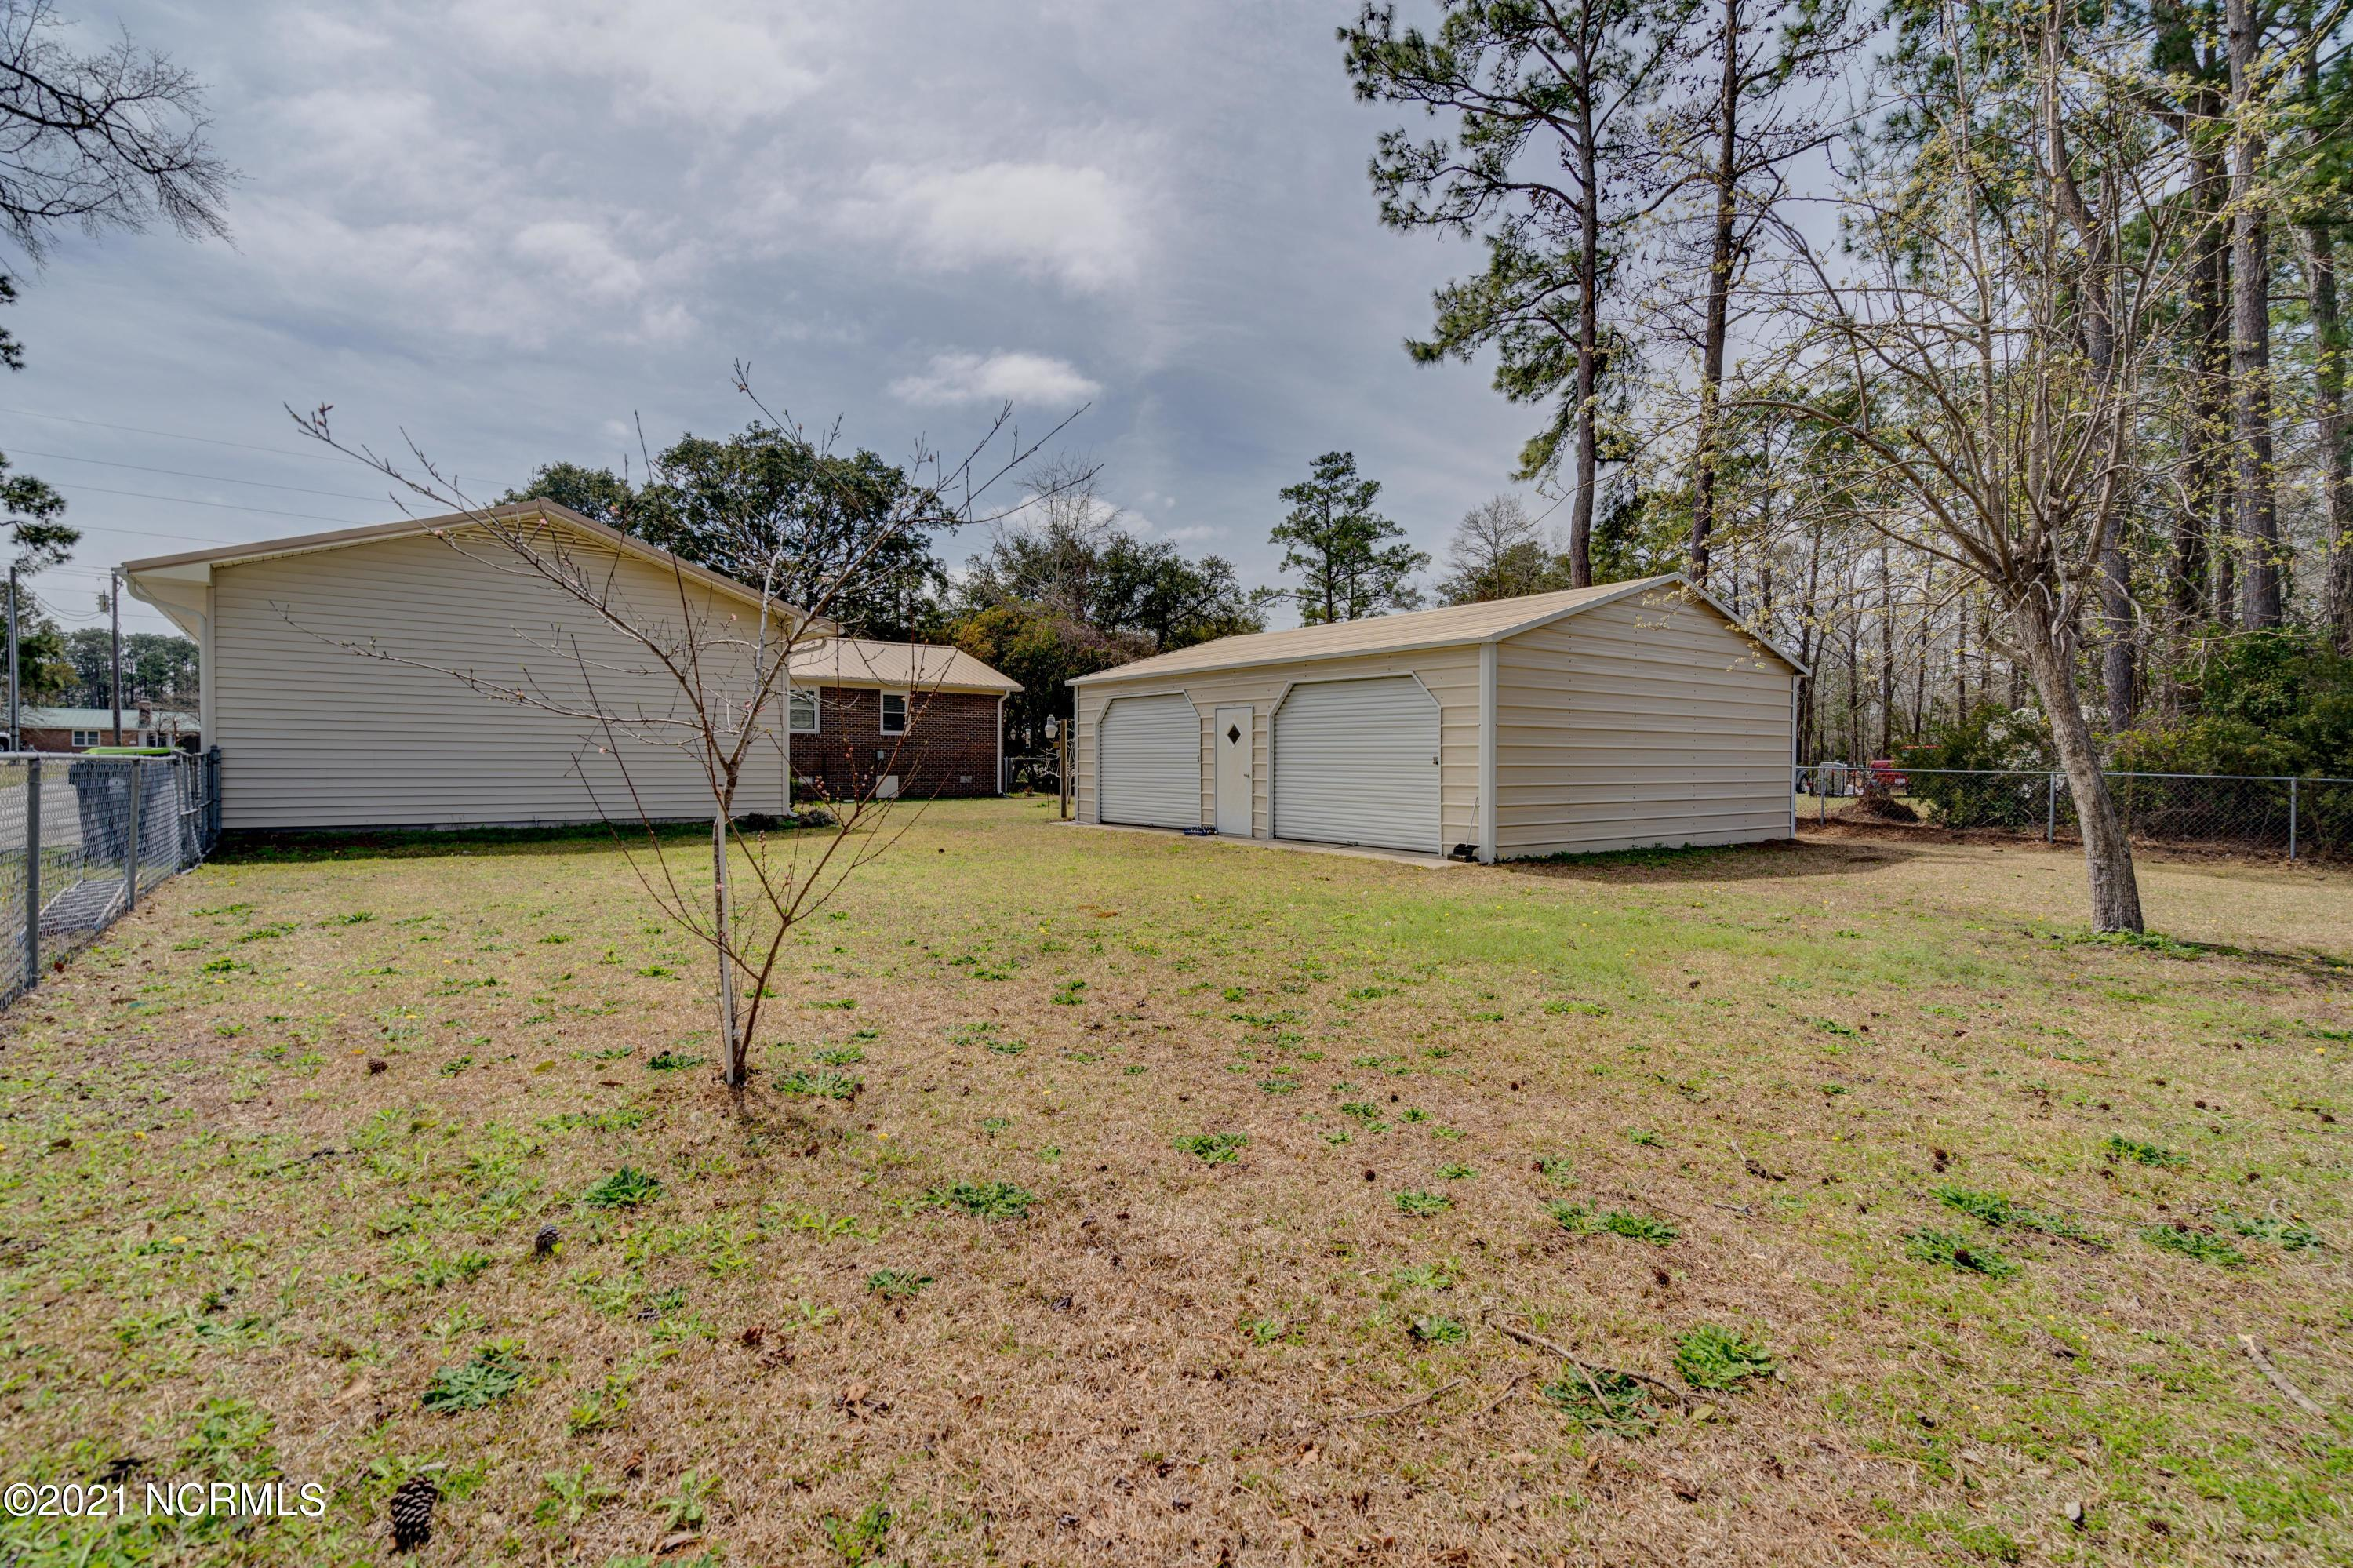 2146 Boones Neck Road, Supply, North Carolina 28462, 3 Bedrooms Bedrooms, 7 Rooms Rooms,2 BathroomsBathrooms,Single family residence,For sale,Boones Neck,100262117